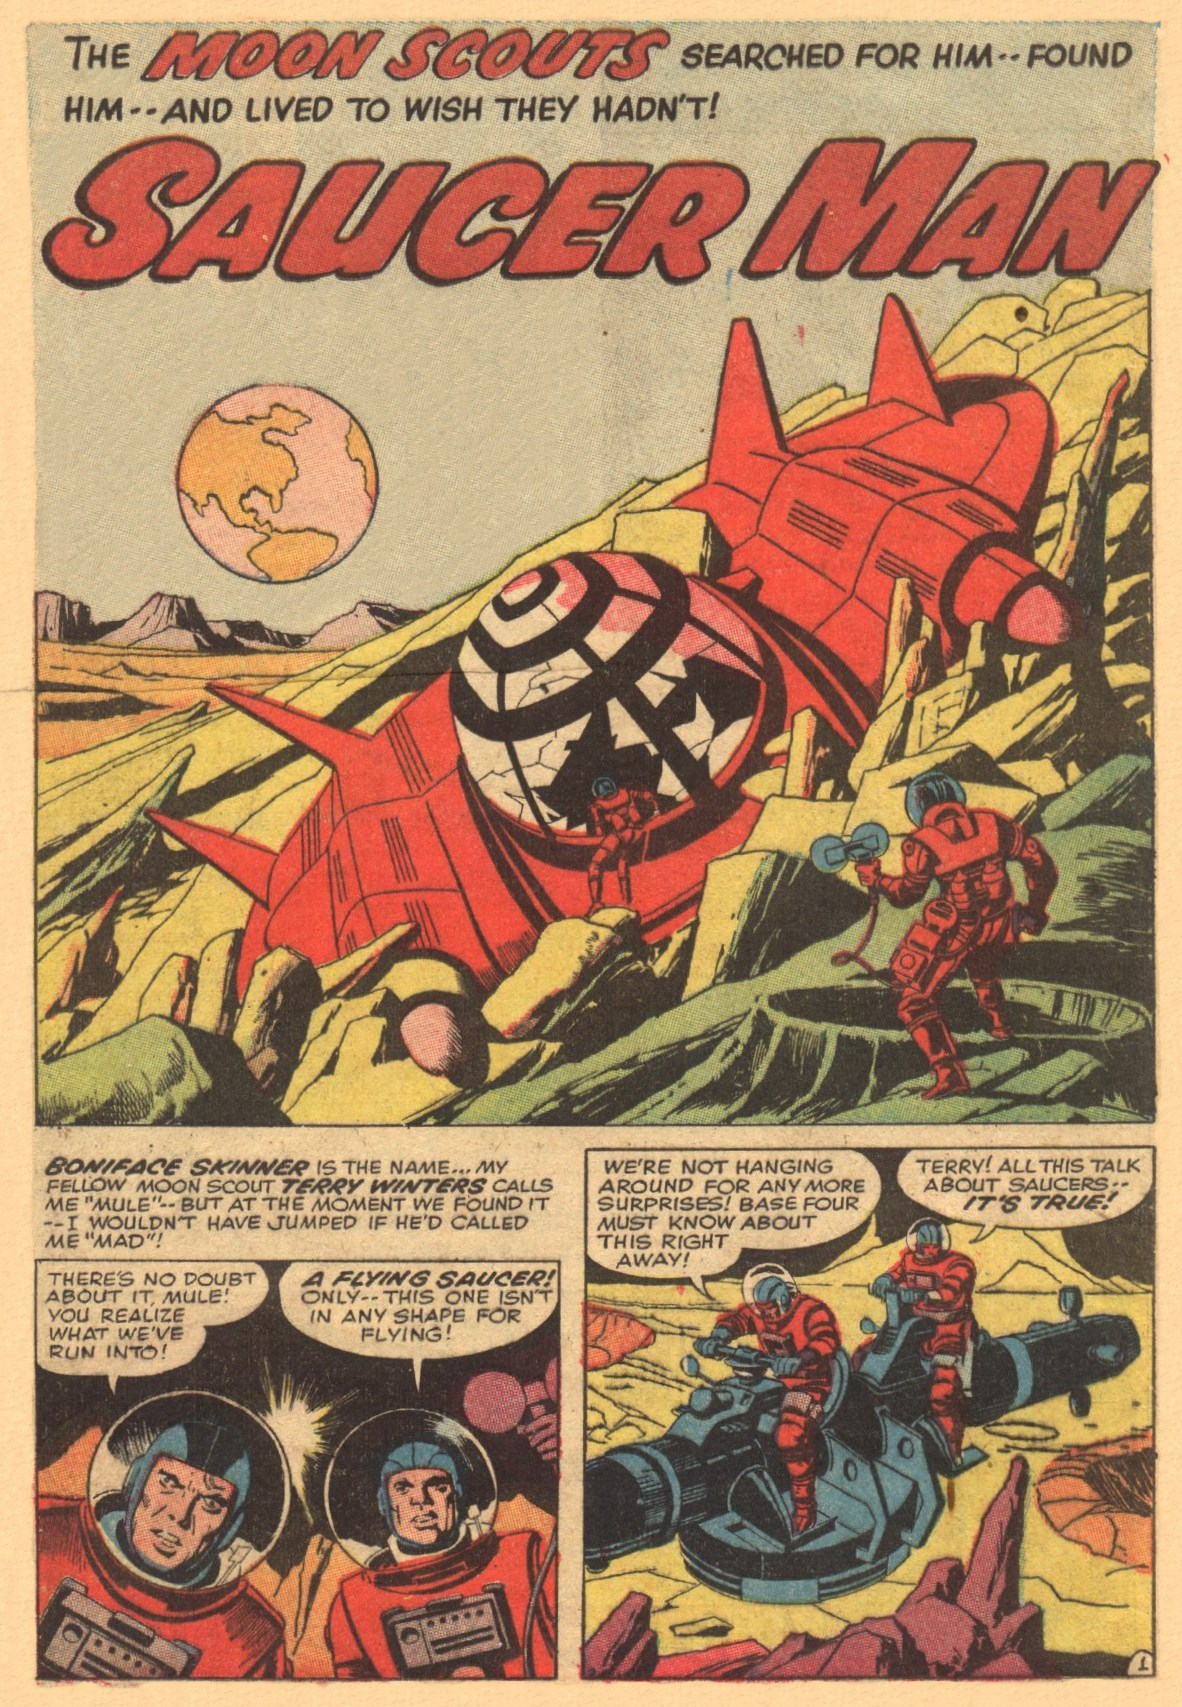 Race For The Moon: Saucer Man!